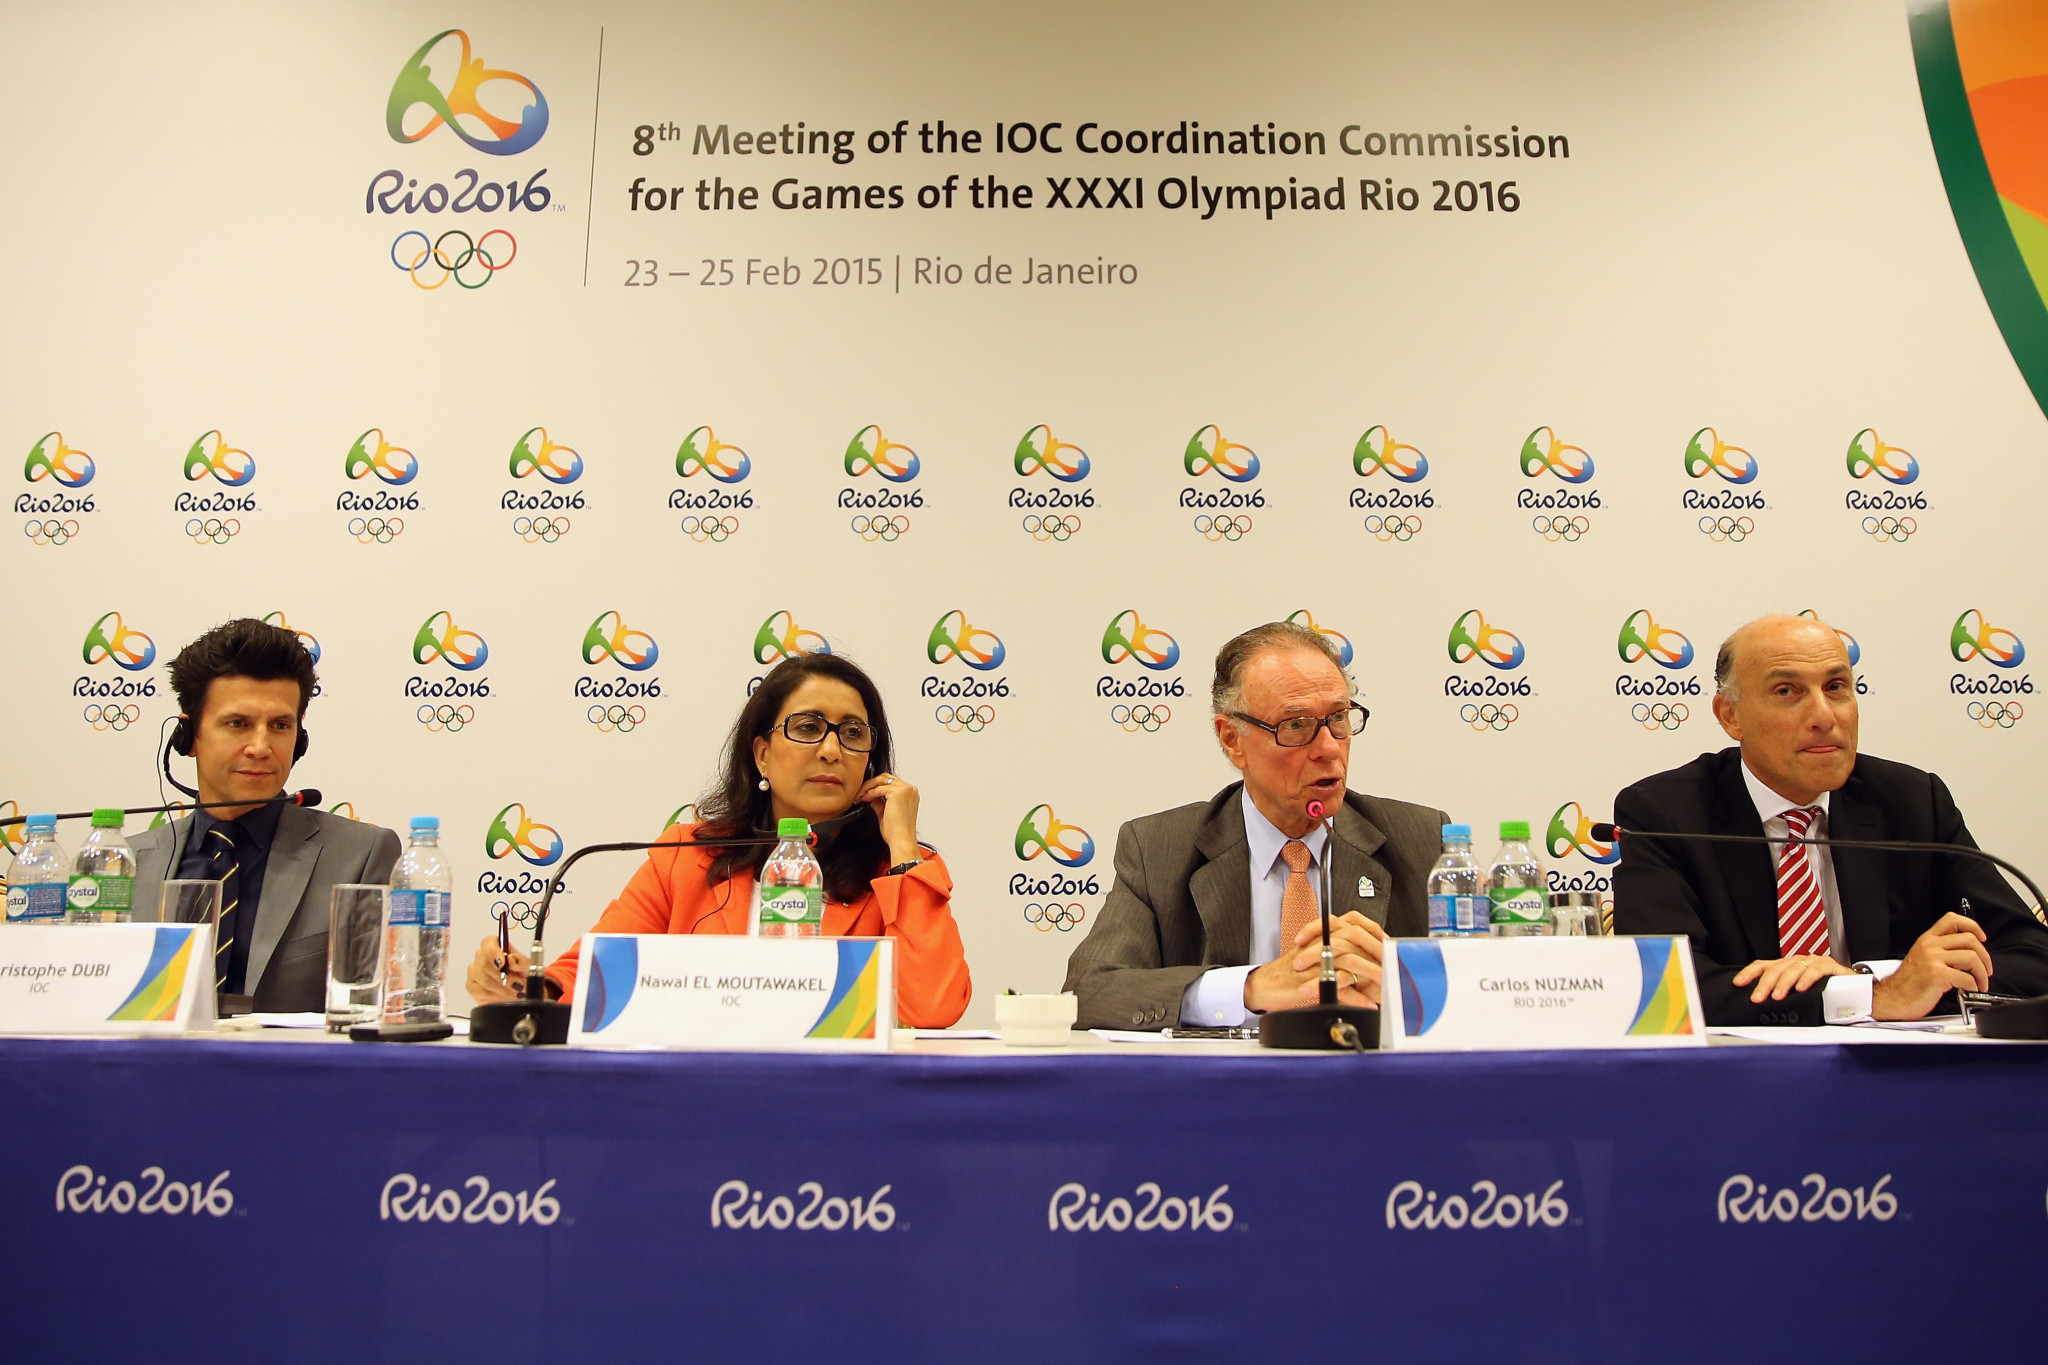 Carlos Nuzman, speaking during a pre-Olympic inspection visit to Rio 2016 ©Getty Images